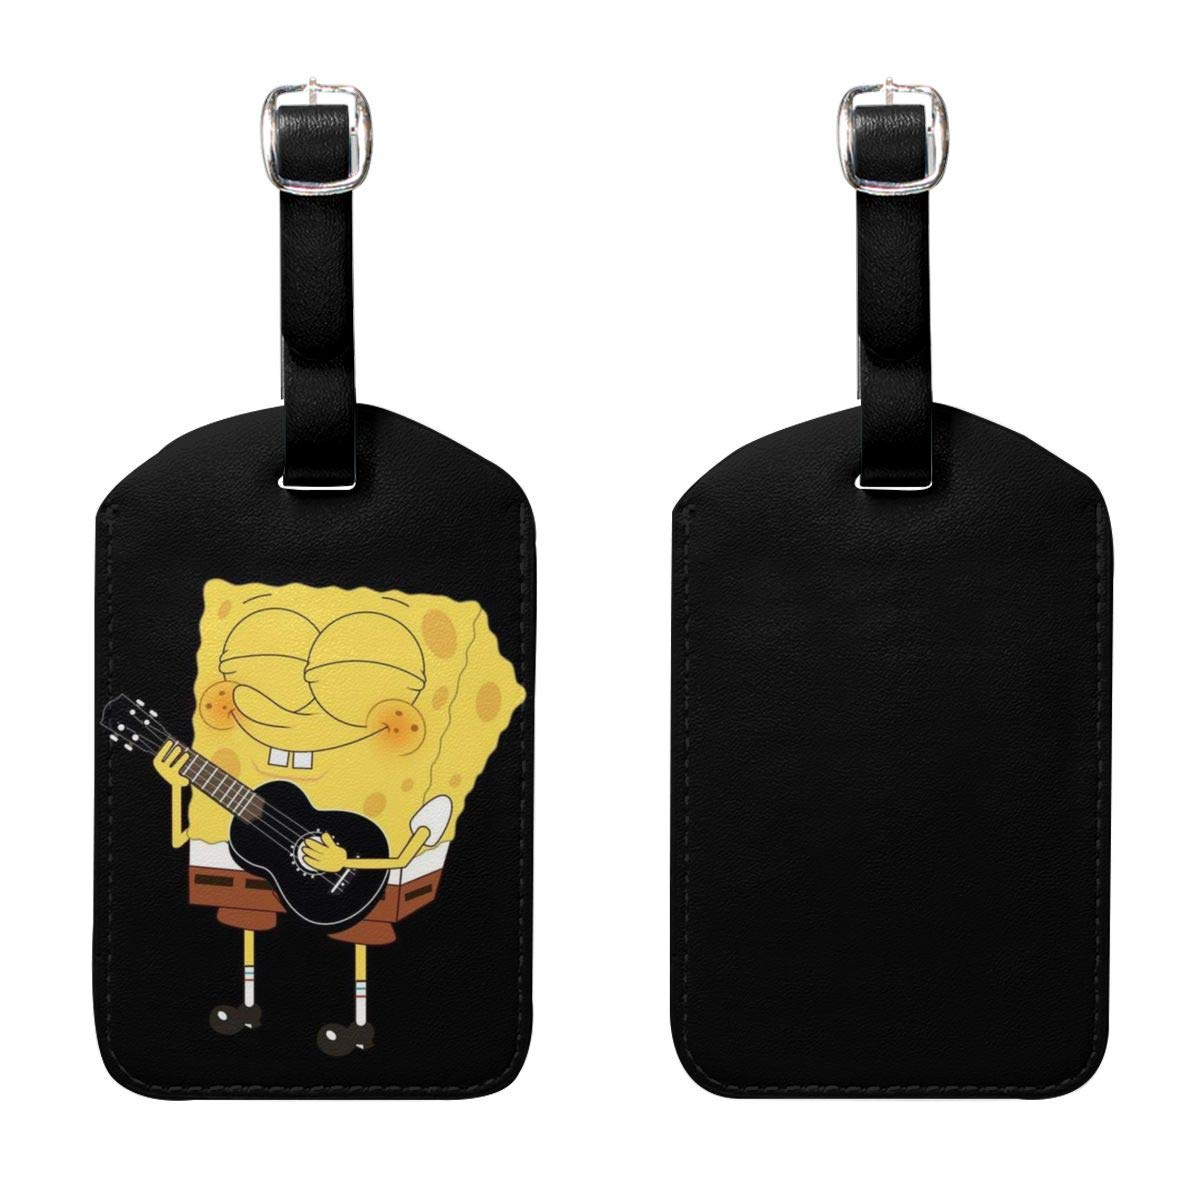 Set of 2 PU Leather Luggage Tags Spongebob Playing Guitar Suitcase Labels Bag Adjustable Leather Strap Travel Accessories